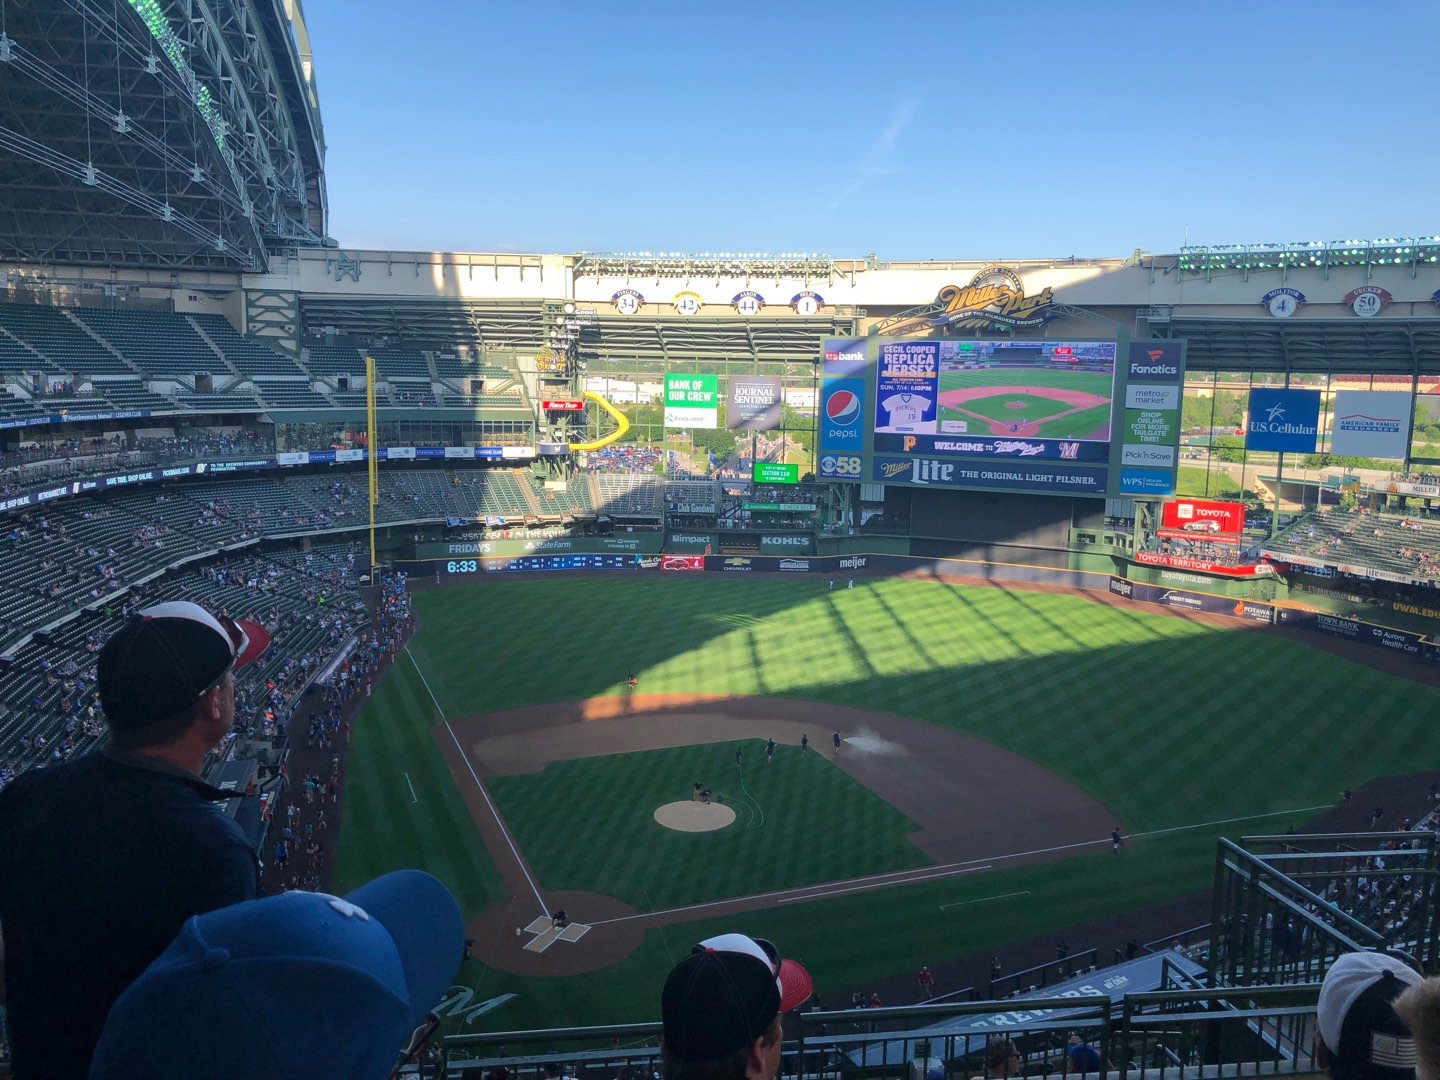 Miller Park Section 419 Row 13 Seat 9